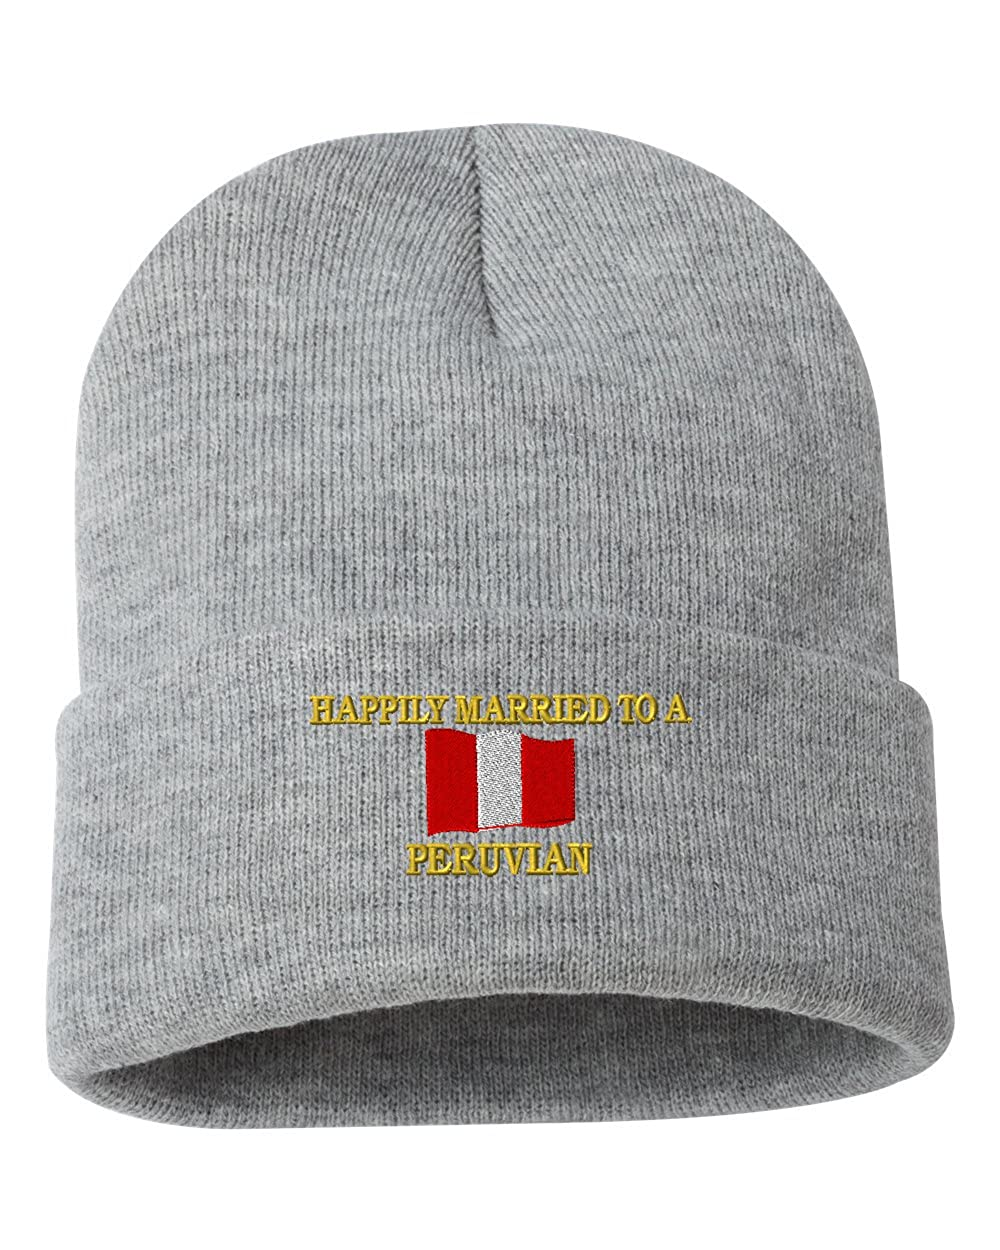 HAPPILY MARRIED TO A PERUVIAN Custom Personalized Embroidery Embroidered Beanie